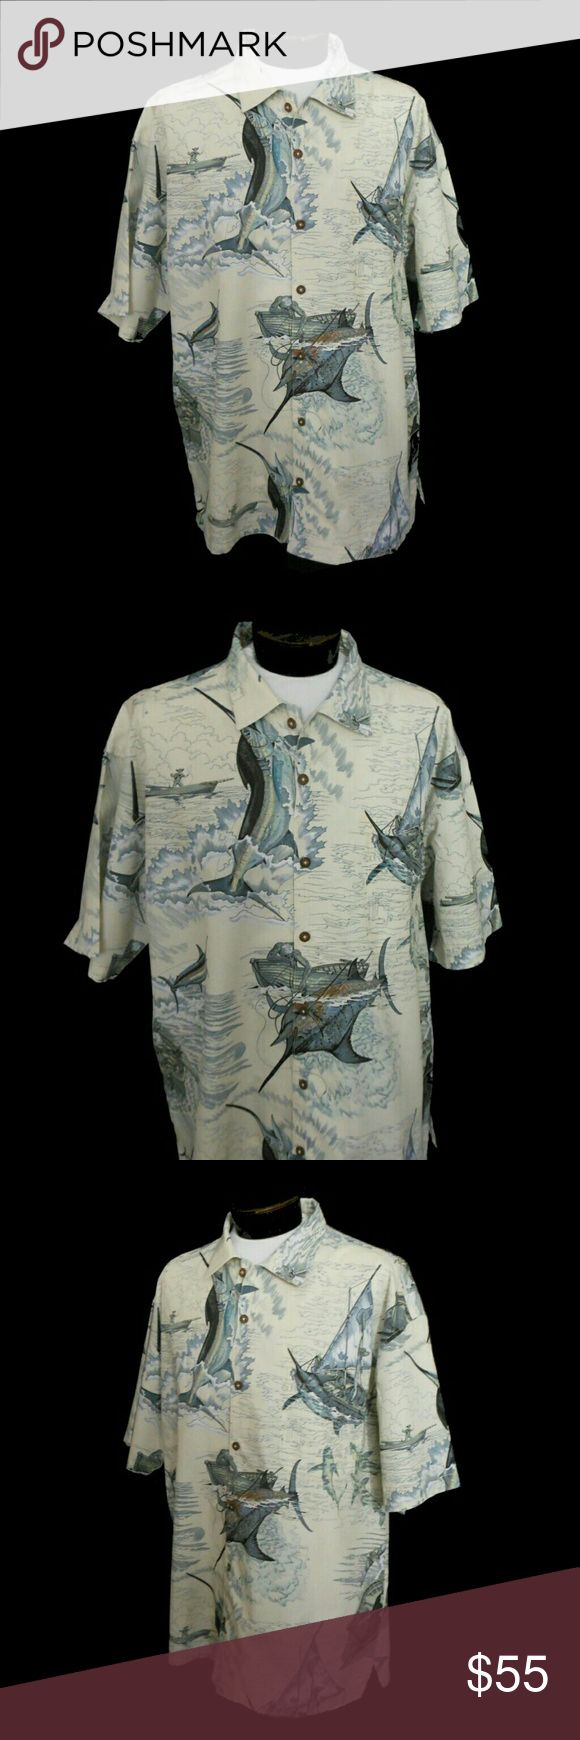 "Vintage 90s Cotton Button Front Shirt Guy Harvey Overall Old Man and the Sea print.   DESIGNER LABEL: --  Guy Harvey By Bluewater Wear Handcrafted Made in USA 100% Cotton  Tagged a size XXL.  MEASUREMENTS:  Shoulders: 24"" Across  Sleeve Outer: 11 1/4"" Long - Shoulder Seam to Sleeve End  Chest: 55"" - Underarm to Underarm  Bottom: 57"" Around  Length: 33"" - Center Back to Shirt Bottom  Left Upper Chest Pocket: 6 1/2"" Deep x 6"" Wide  This is in excellent condition with no issues. Guy Harvey…"